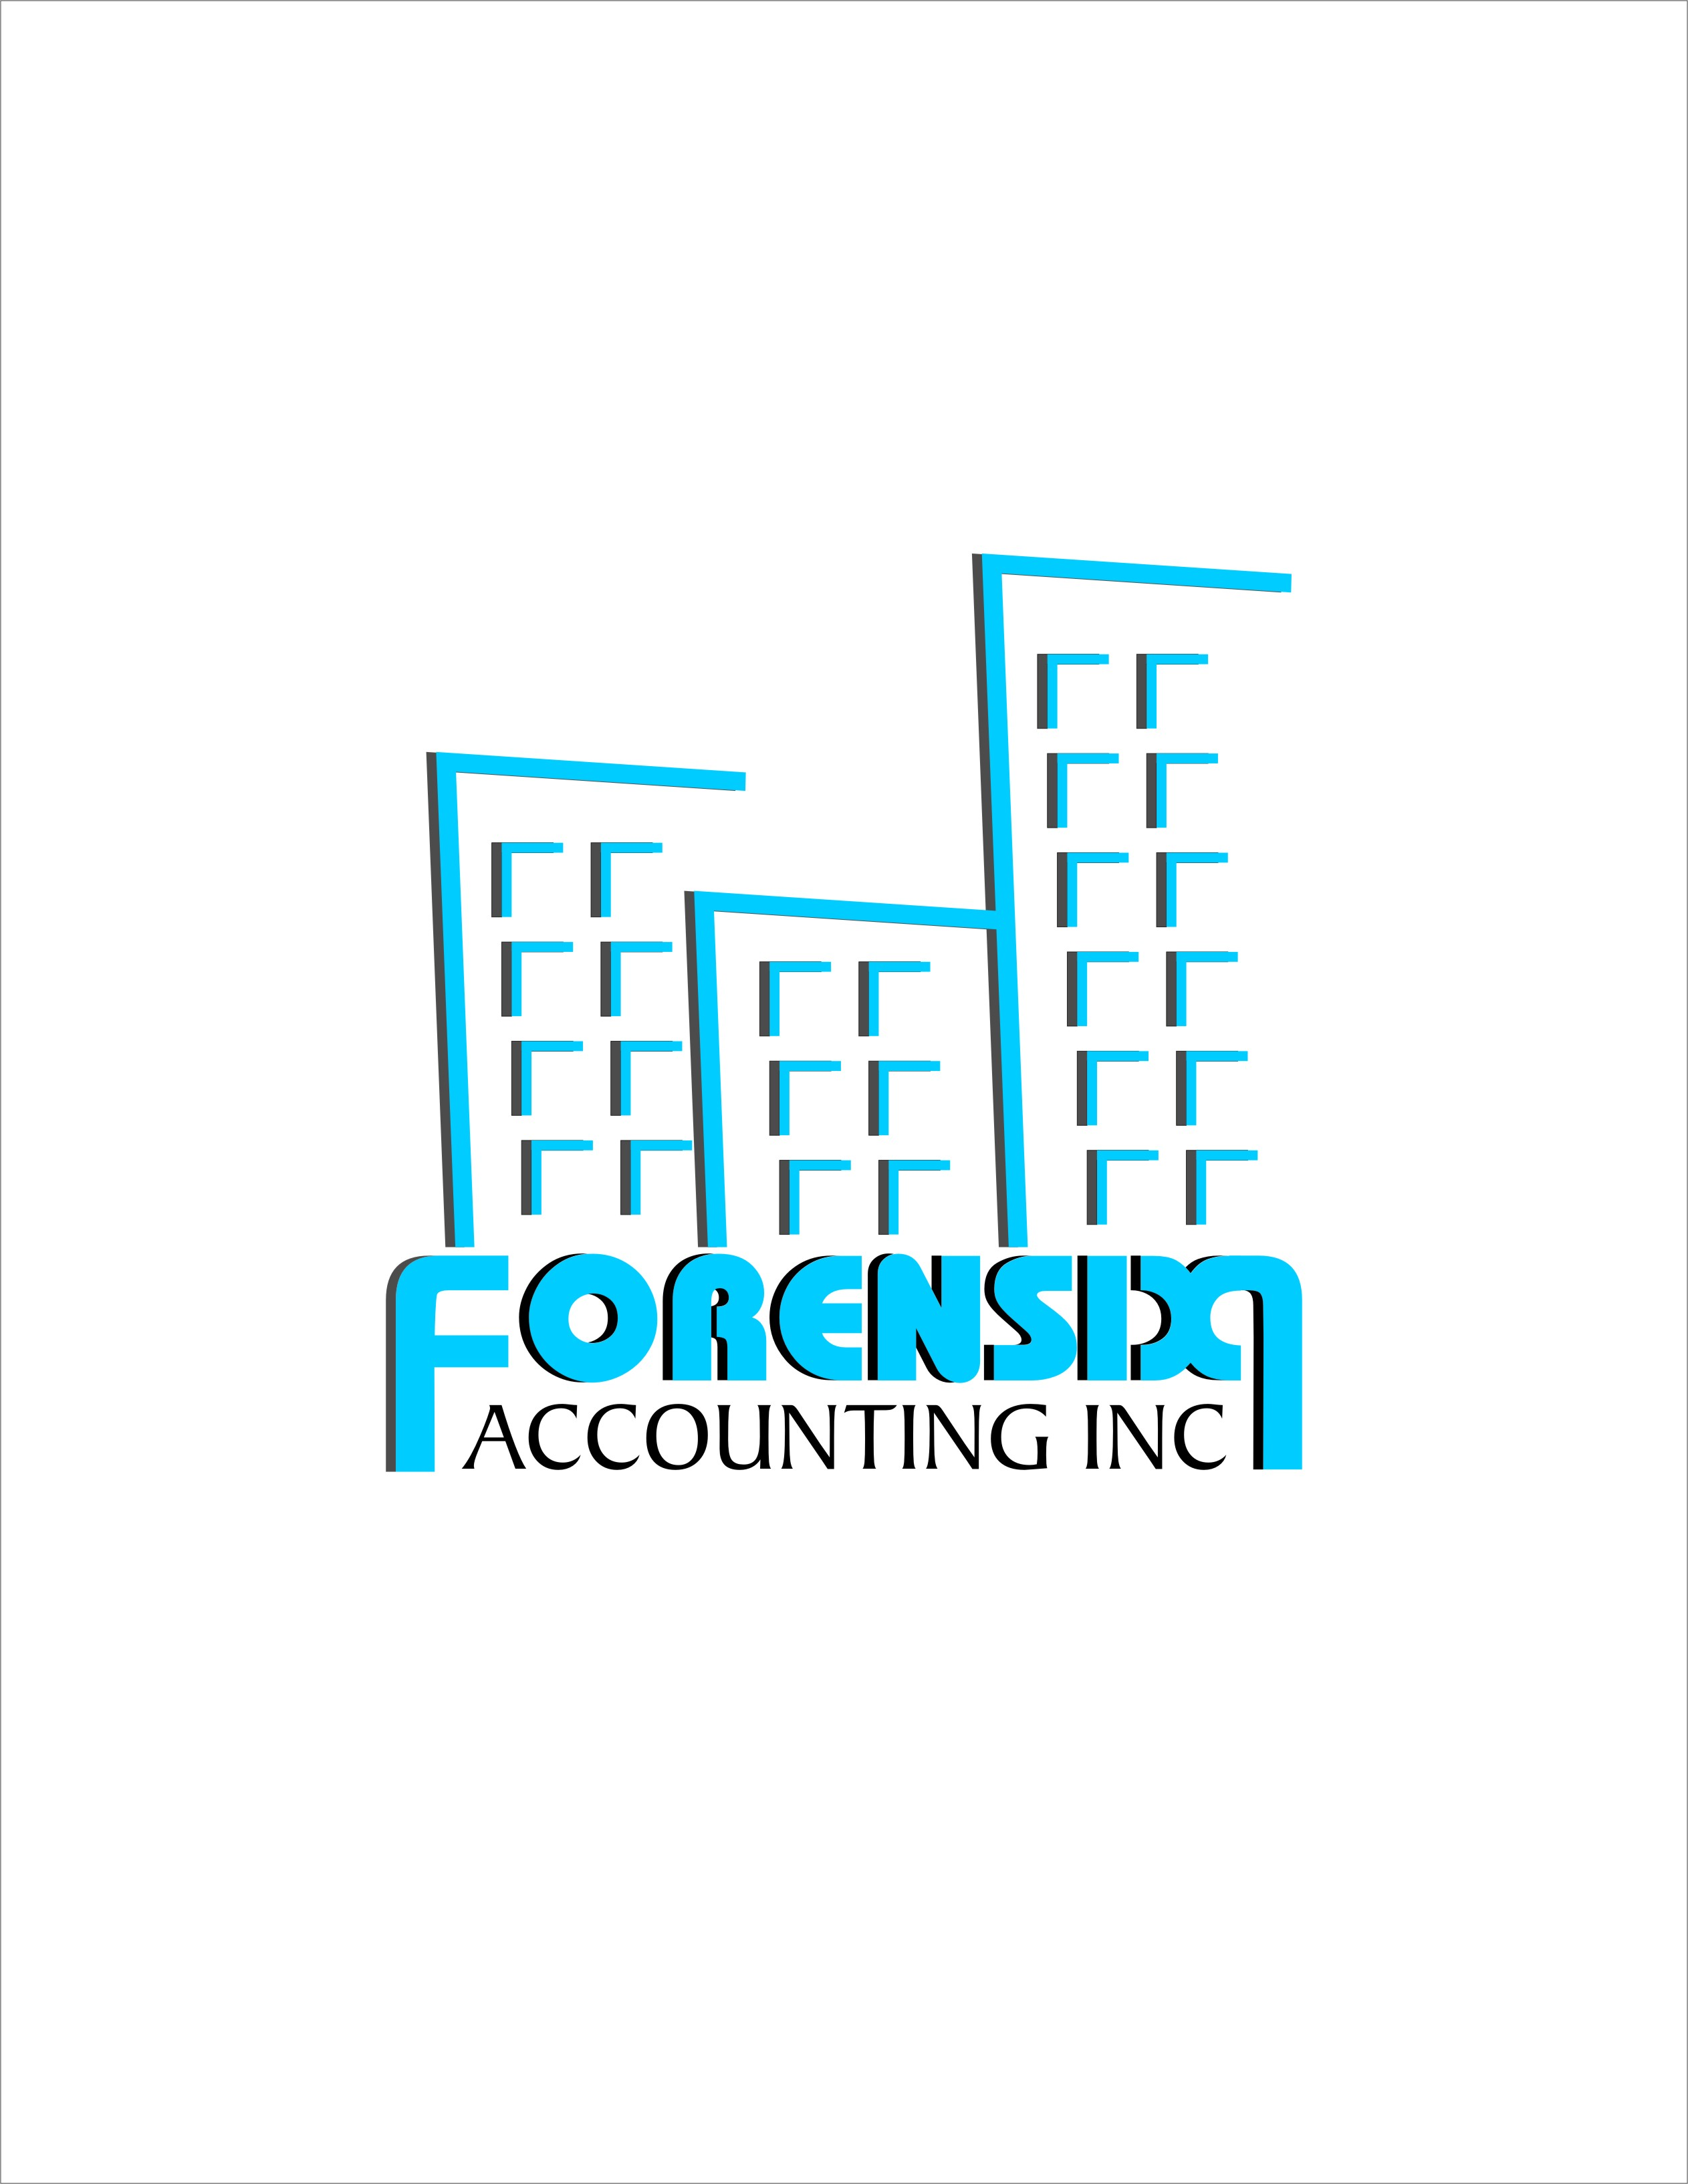 Logo Design by Achmad Ismail - Entry No. 41 in the Logo Design Contest FORENSIX ACCOUNTING INC. Logo Design.